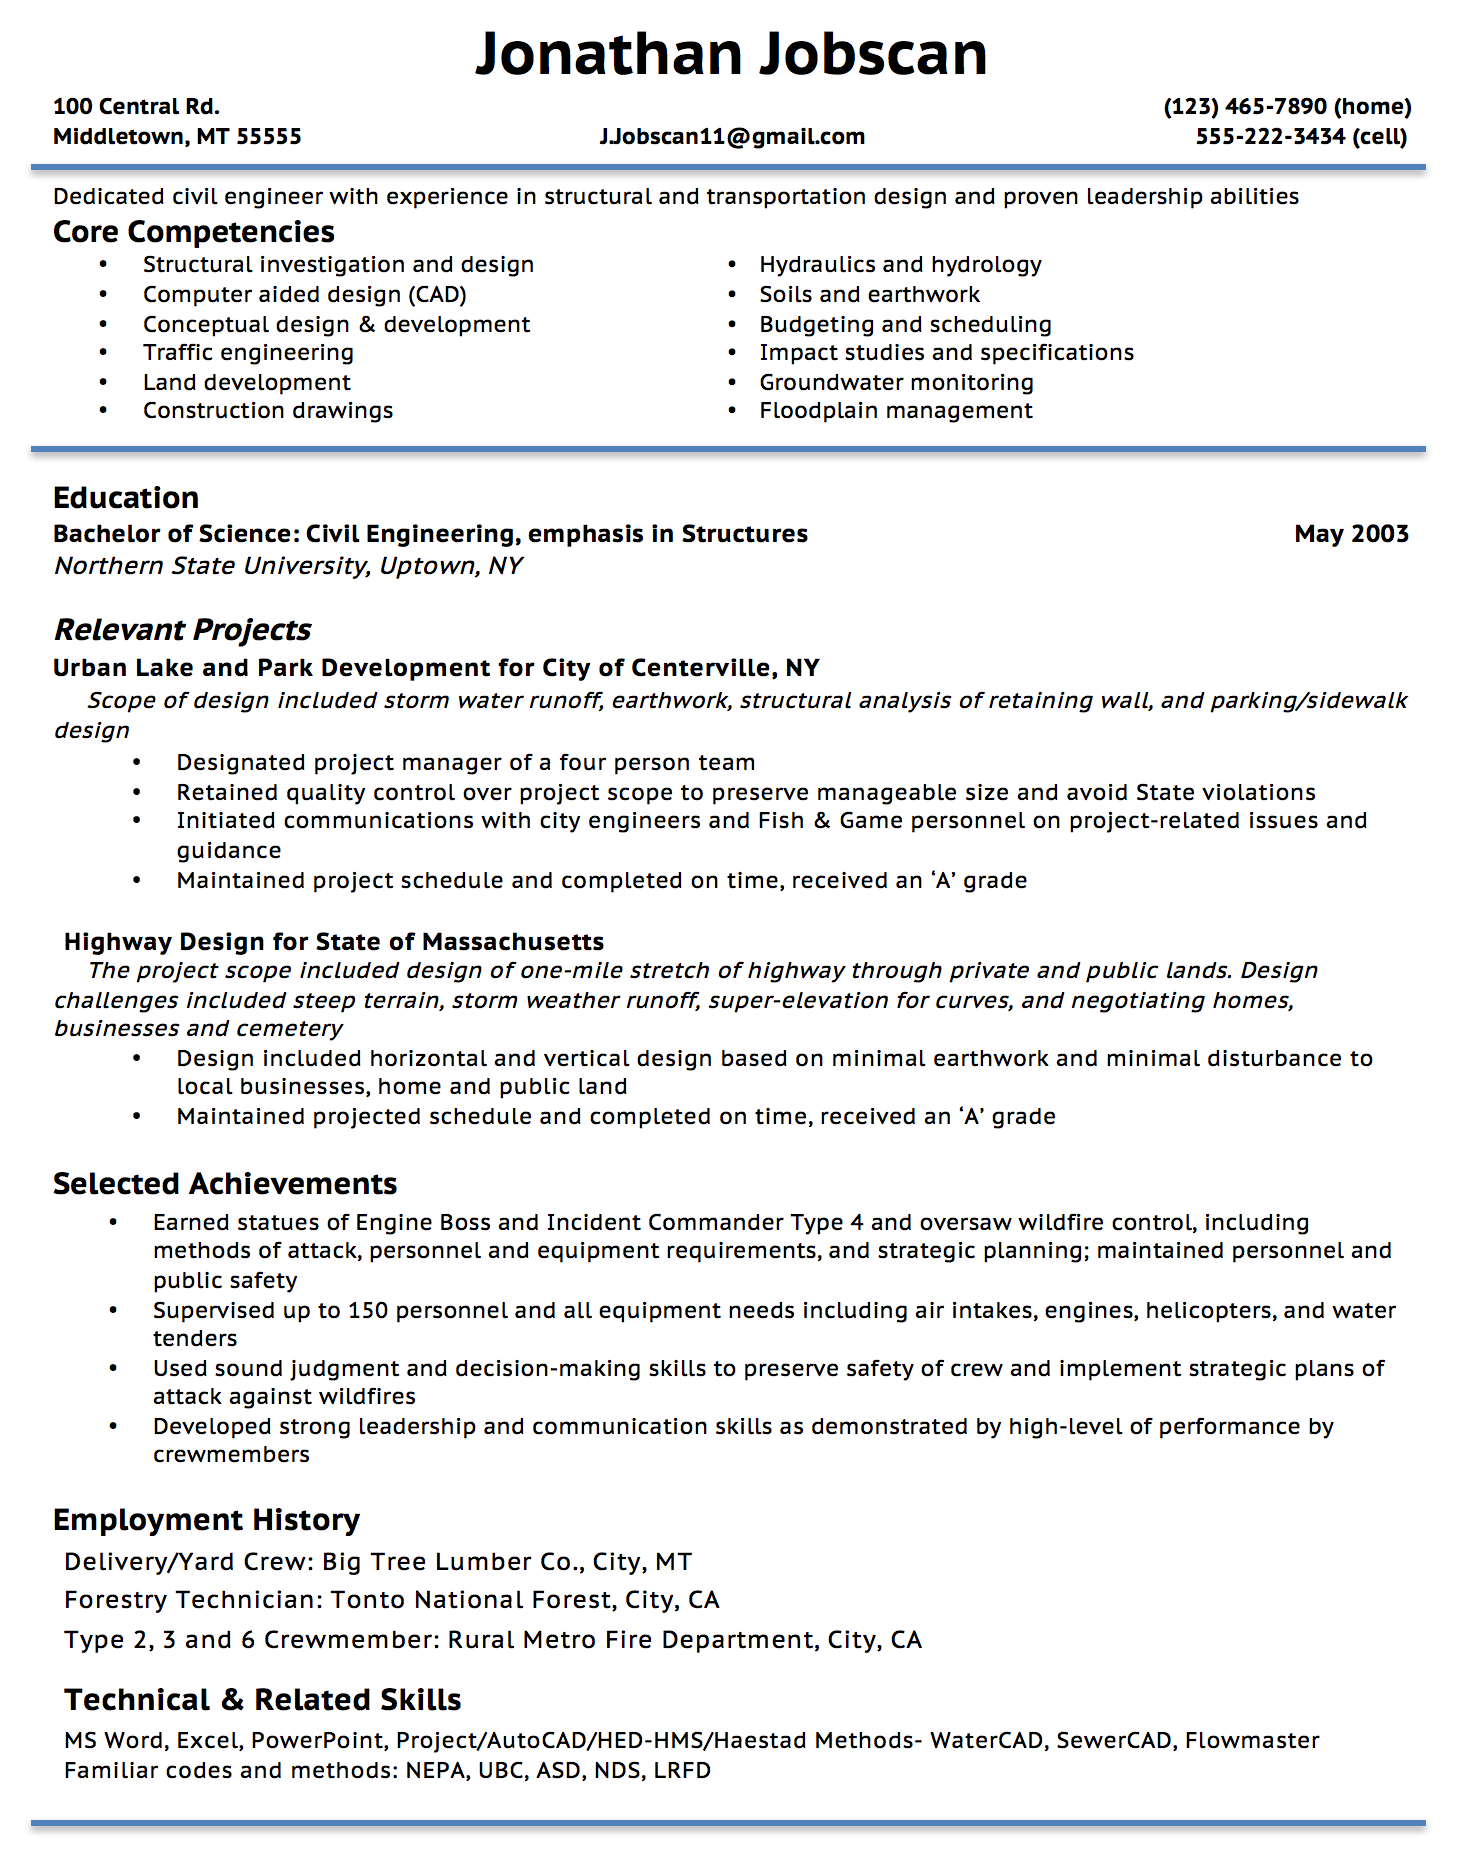 Opposenewapstandardsus  Terrific Resume Writing Guide  Jobscan With Handsome Example Of A Functional Resume Format With Nice Logistics Coordinator Resume Also Mba Application Resume In Addition Entry Level Dental Assistant Resume And Instructional Designer Resume As Well As How To Format References On A Resume Additionally Resume Writers Reviews From Jobscanco With Opposenewapstandardsus  Handsome Resume Writing Guide  Jobscan With Nice Example Of A Functional Resume Format And Terrific Logistics Coordinator Resume Also Mba Application Resume In Addition Entry Level Dental Assistant Resume From Jobscanco